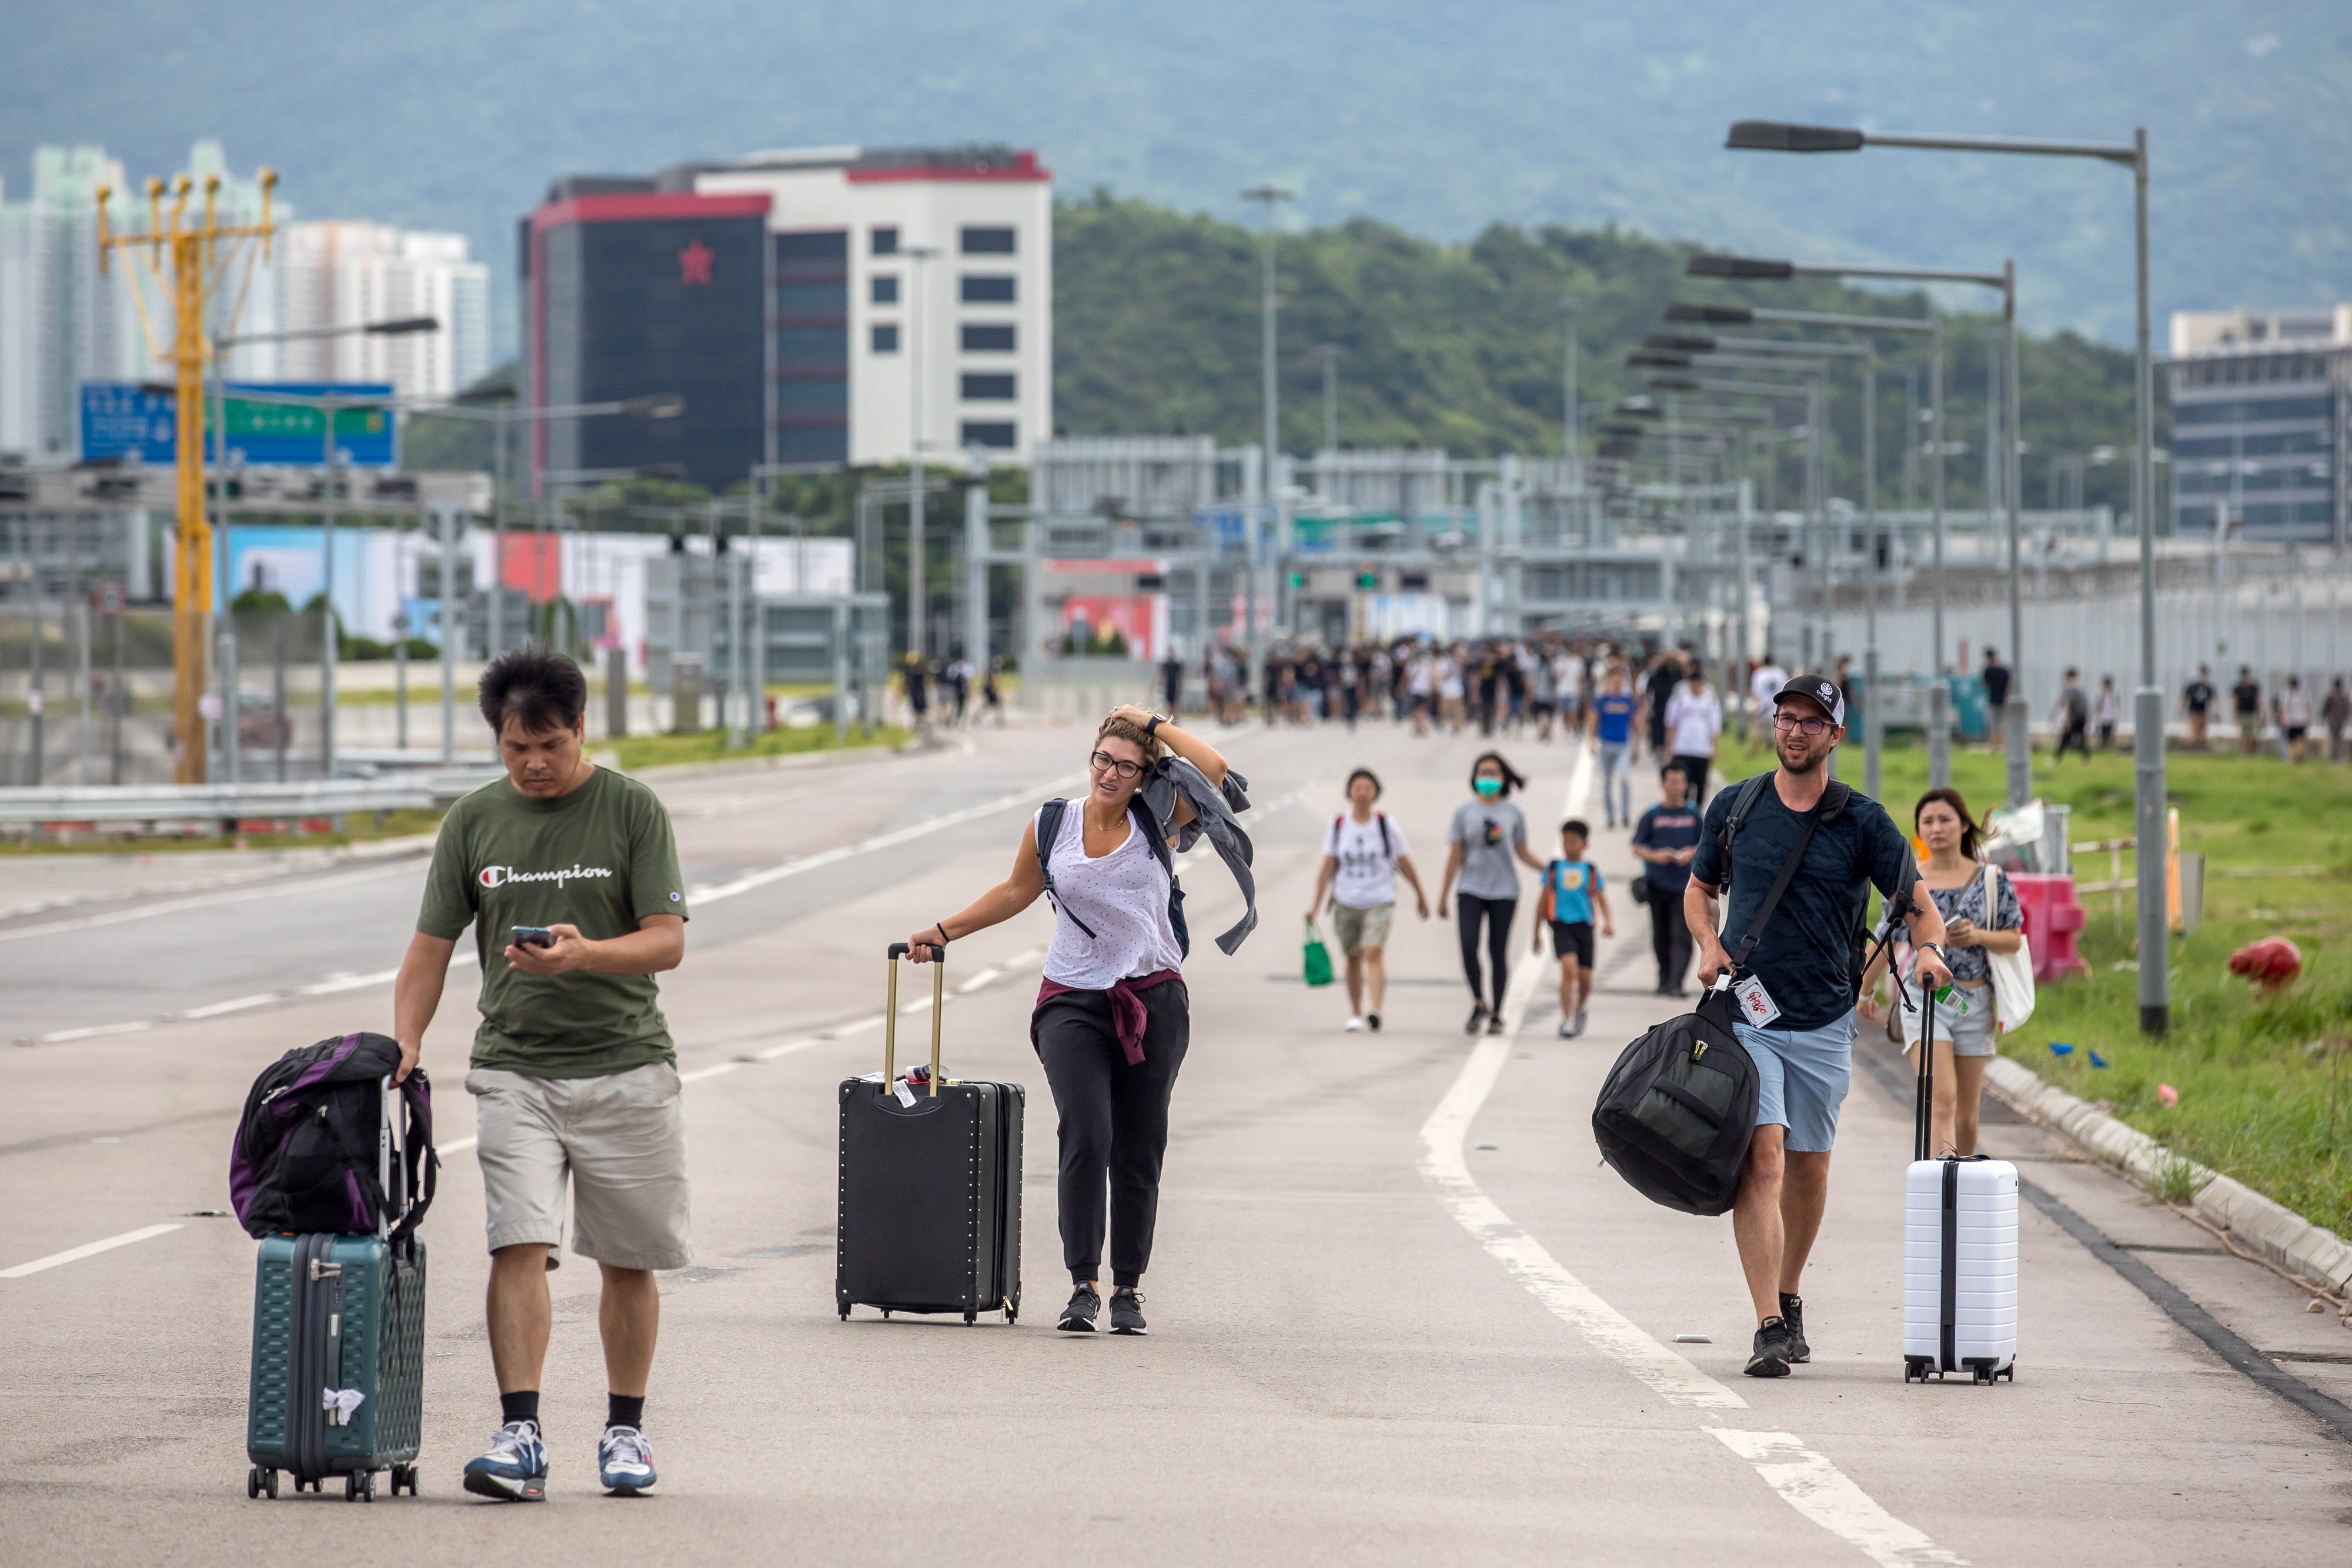 Travelers walk with their luggage along a road towards the Hong Kong International Airport during a protest in Hong Kong, China, on Sunday, Sept. 1, 2019.